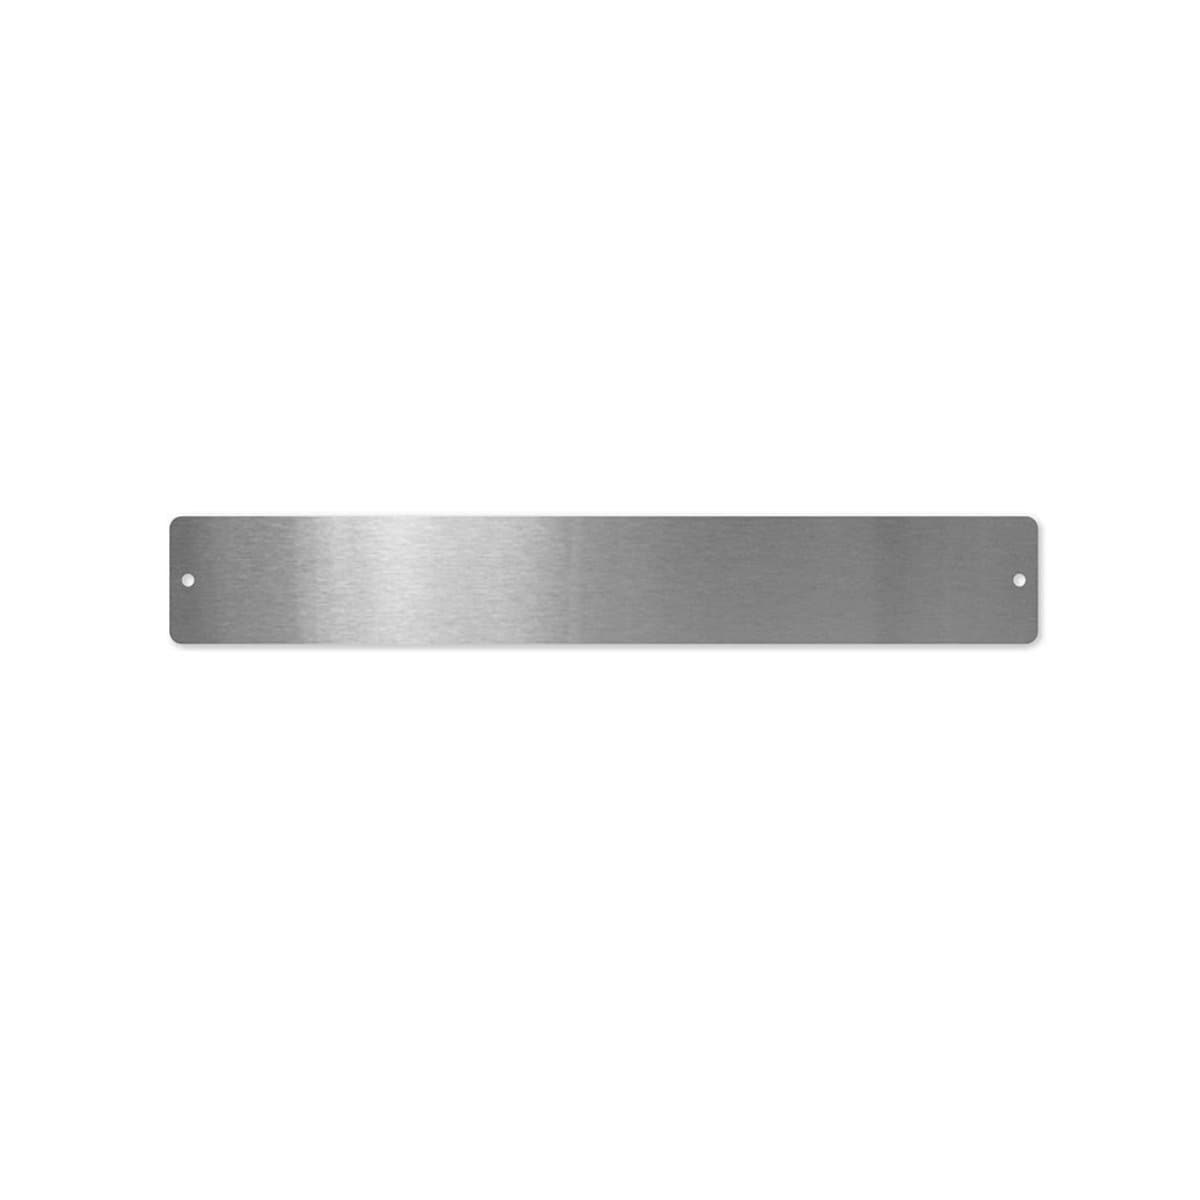 Trendform Magnet Board ELEMENT SMALL, 5x35cm, Stainless Steel